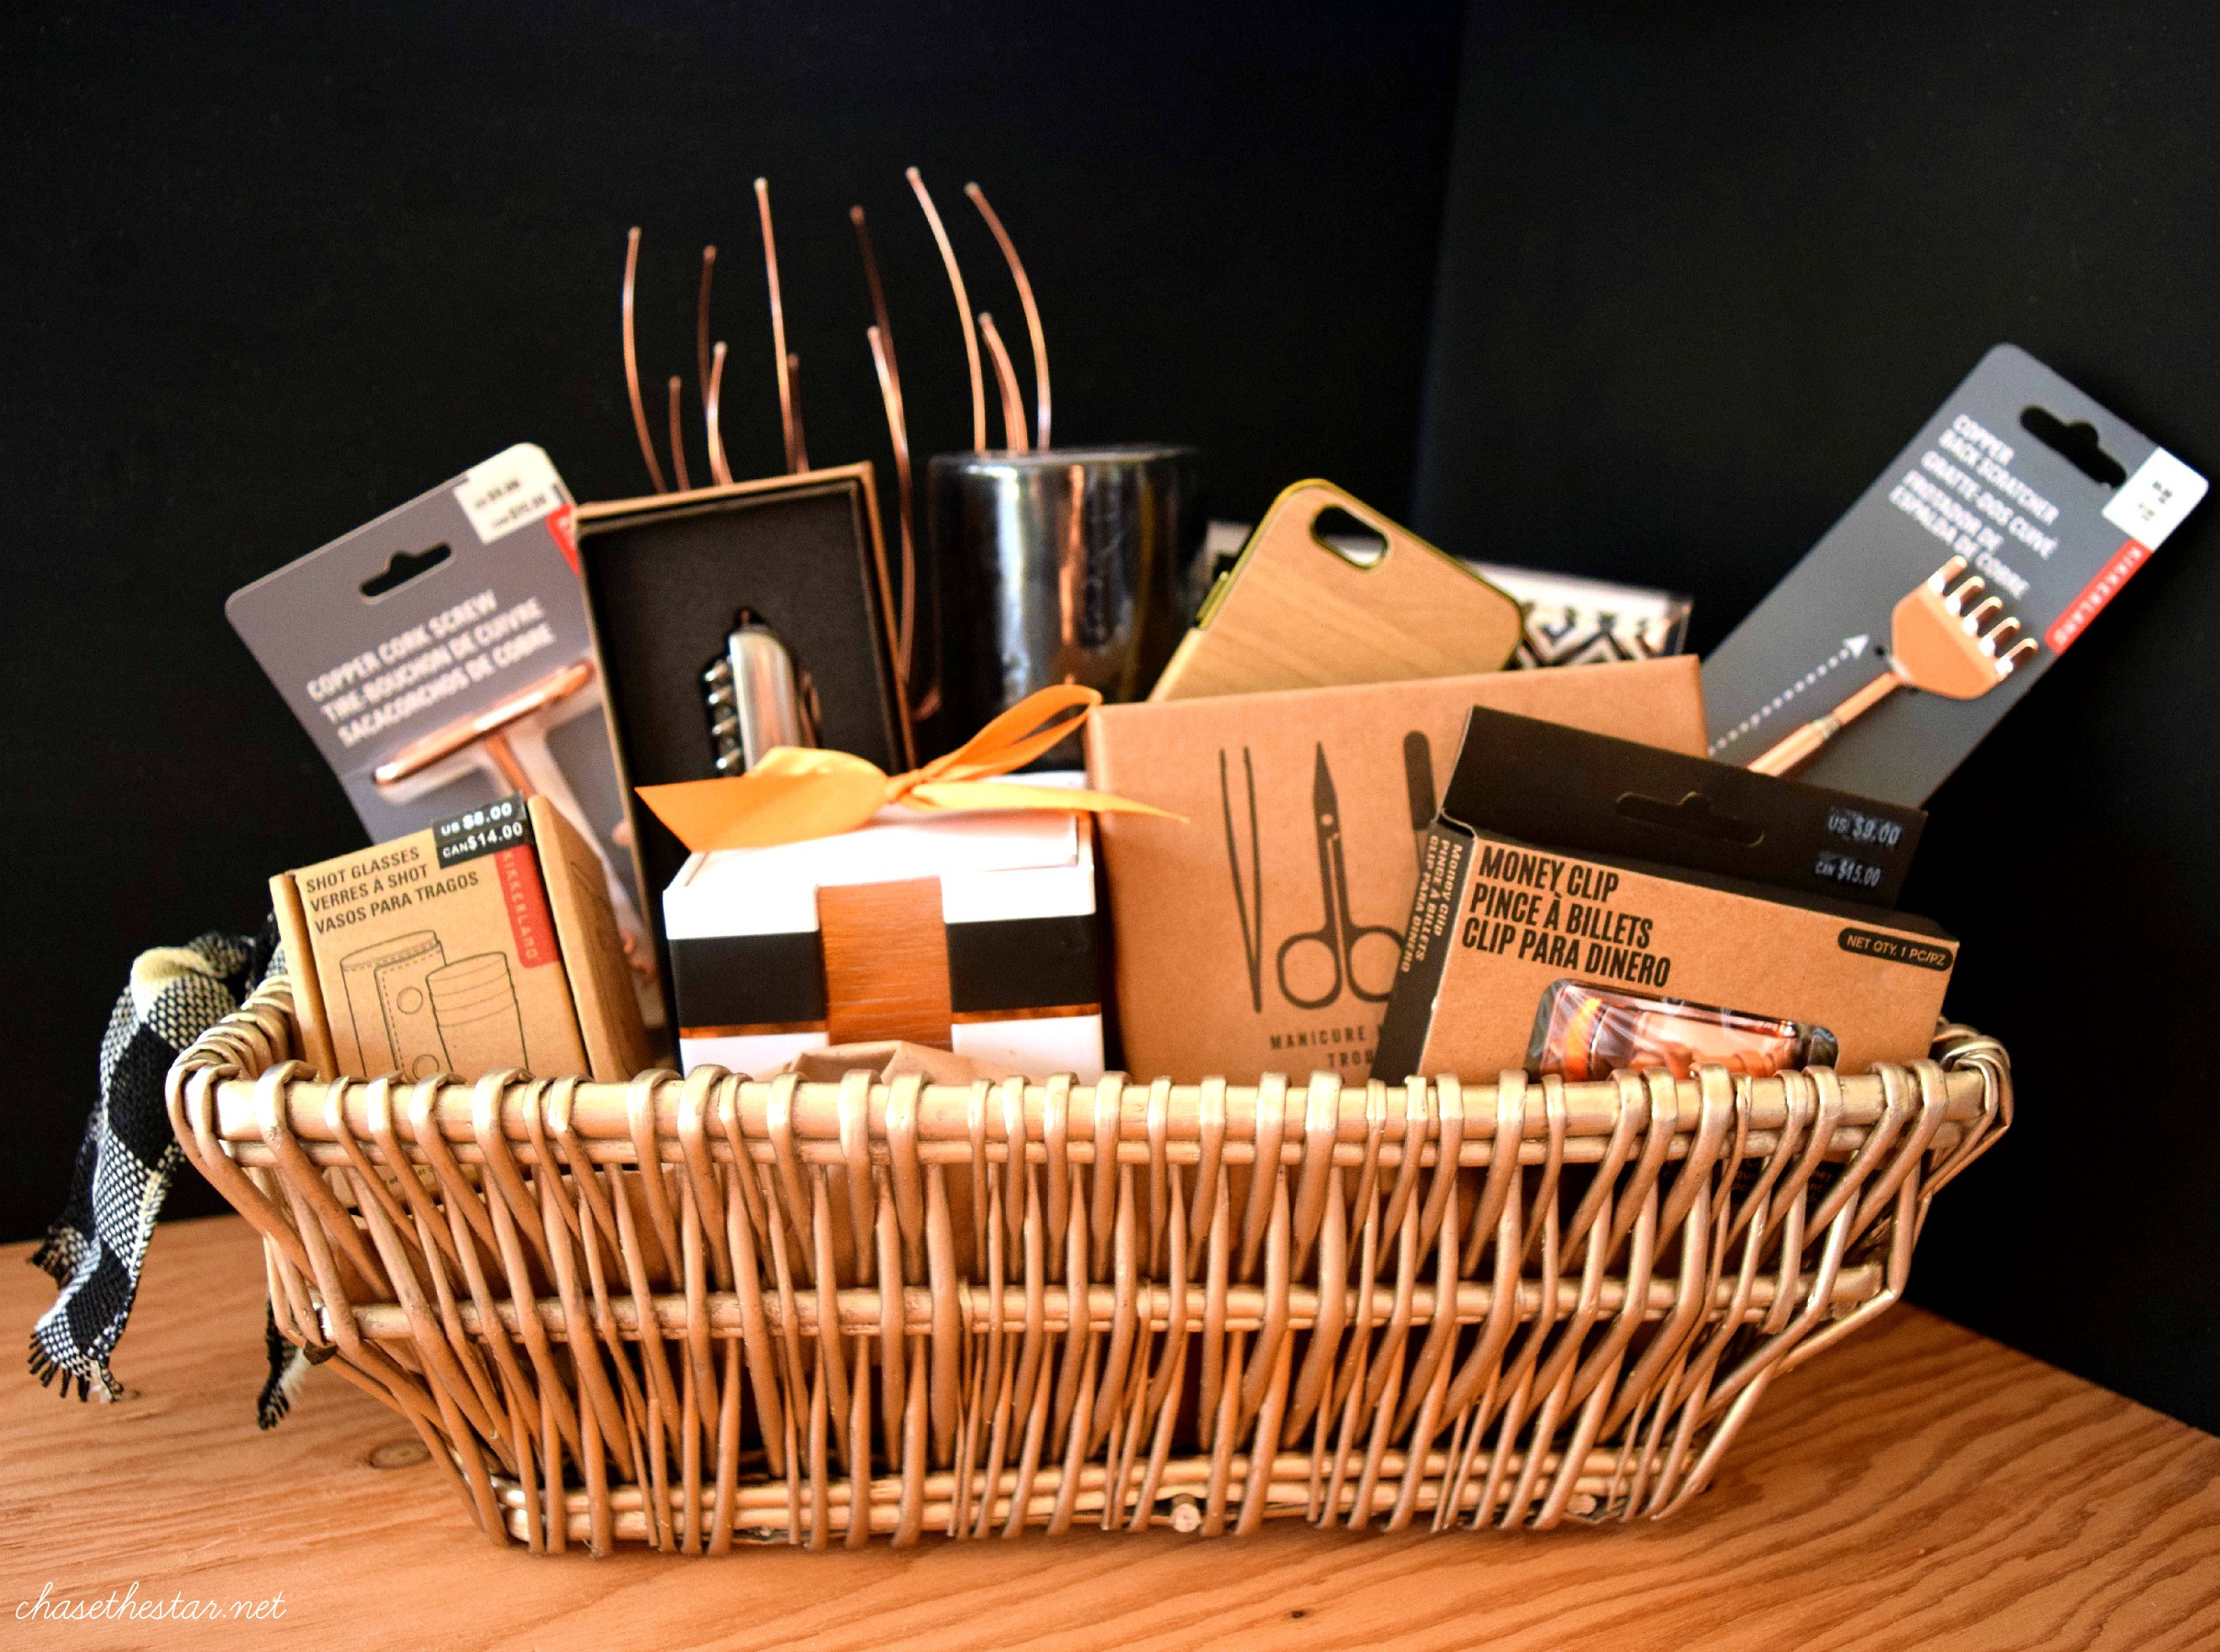 Best ideas about Man Gift Baskets Ideas . Save or Pin 3 DIY Gift Basket Ideas Now.